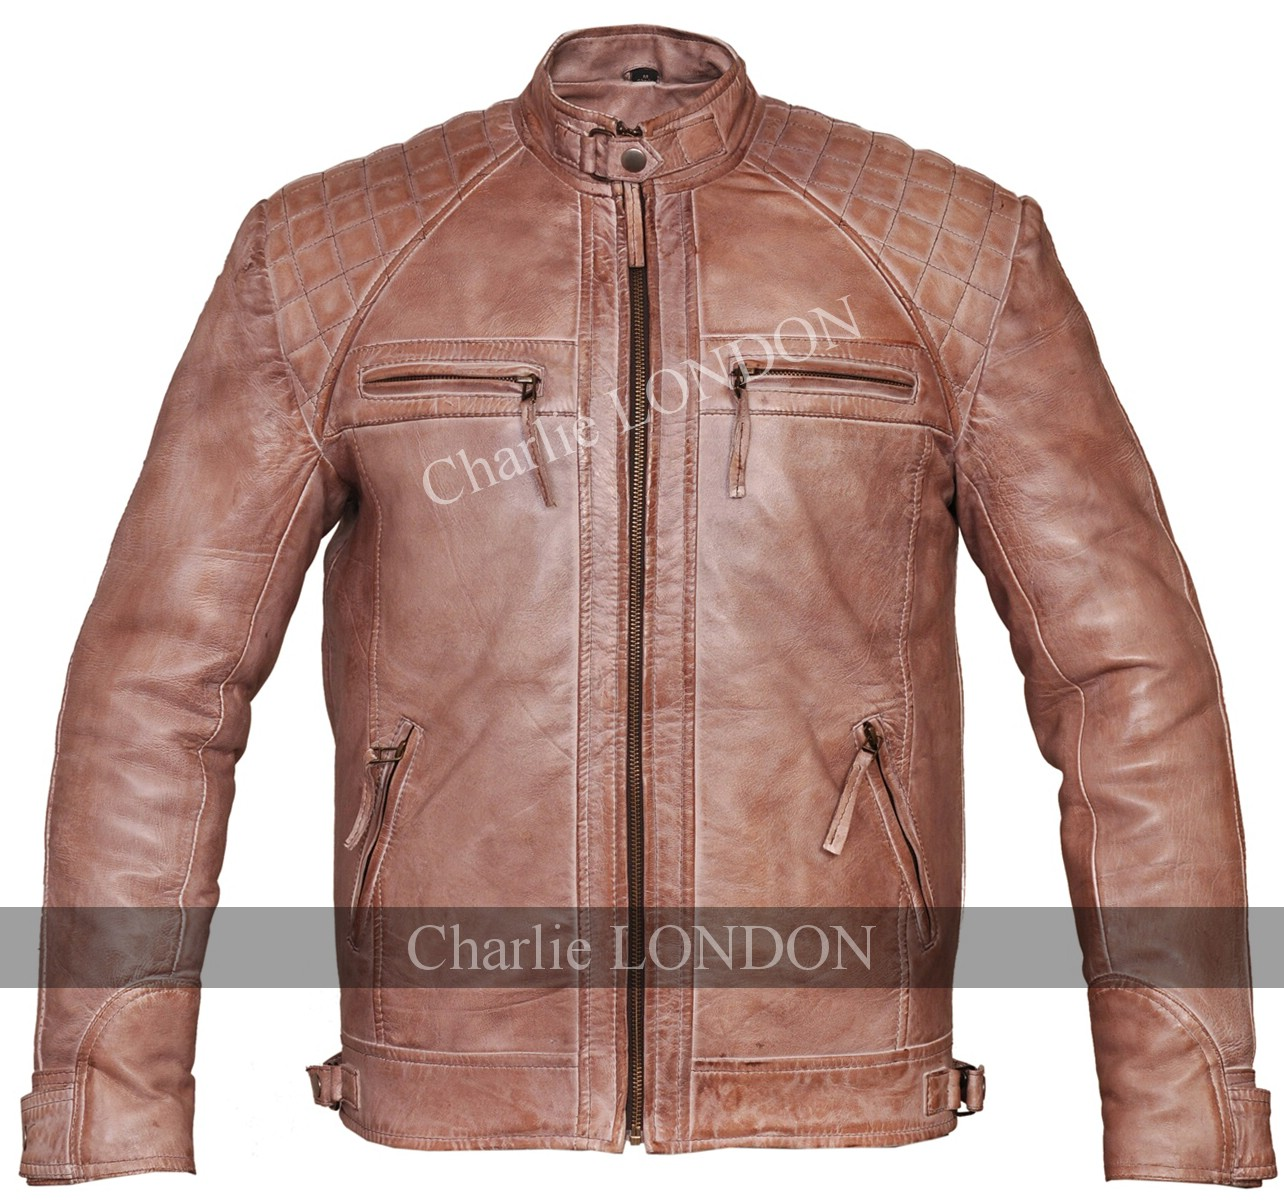 Mens Retro Vintage Brown Zipped Diamond Leather Jacket